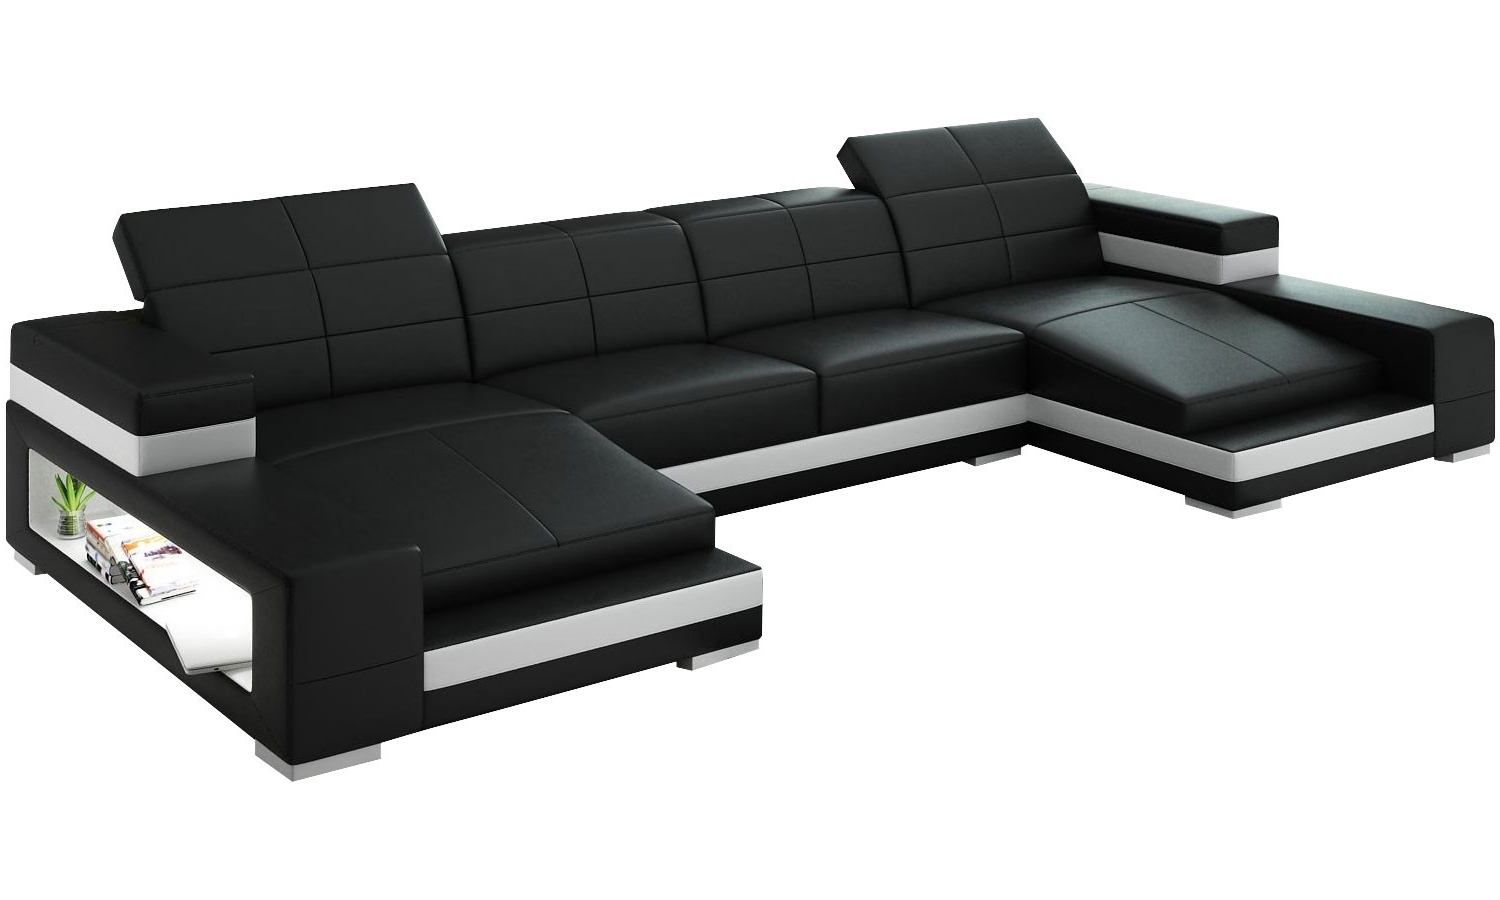 Double Chaise Sectional Sofa – Cleanupflorida With Regard To Newest Customizable Sectional Sofas (View 7 of 20)